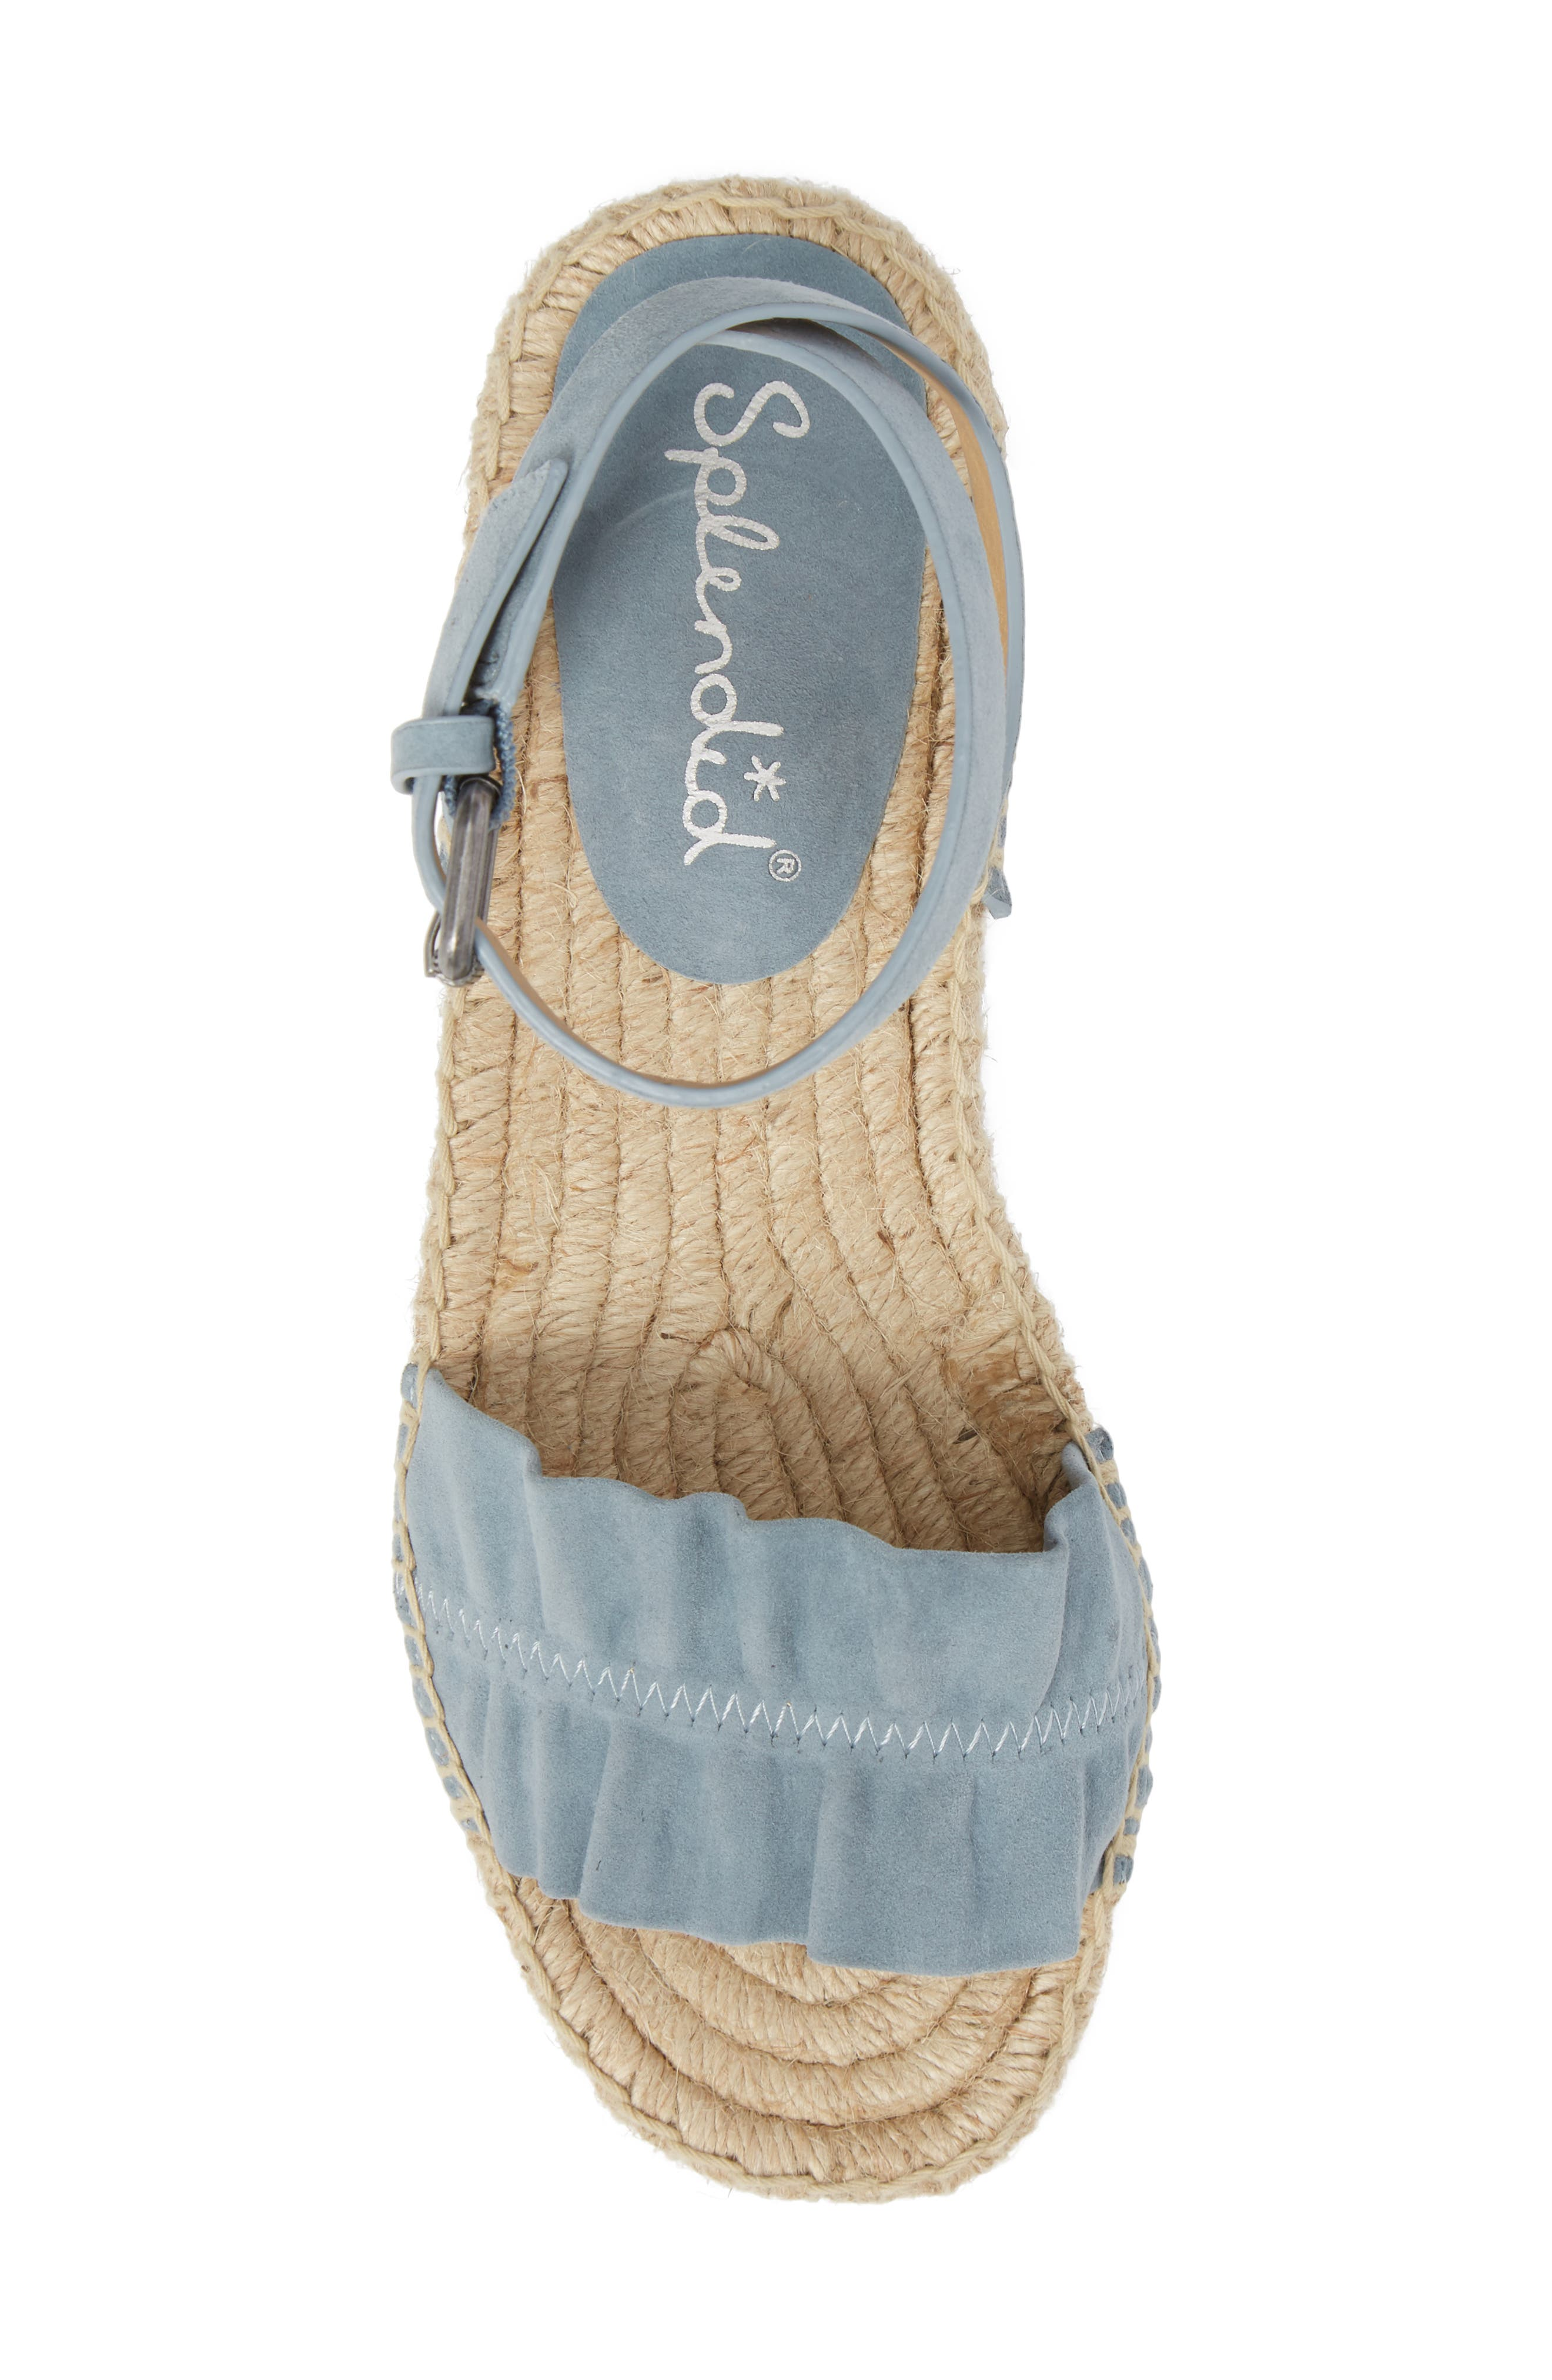 Becca Ruffled Espadrille Sandal,                             Alternate thumbnail 5, color,                             Shadow Blue Suede